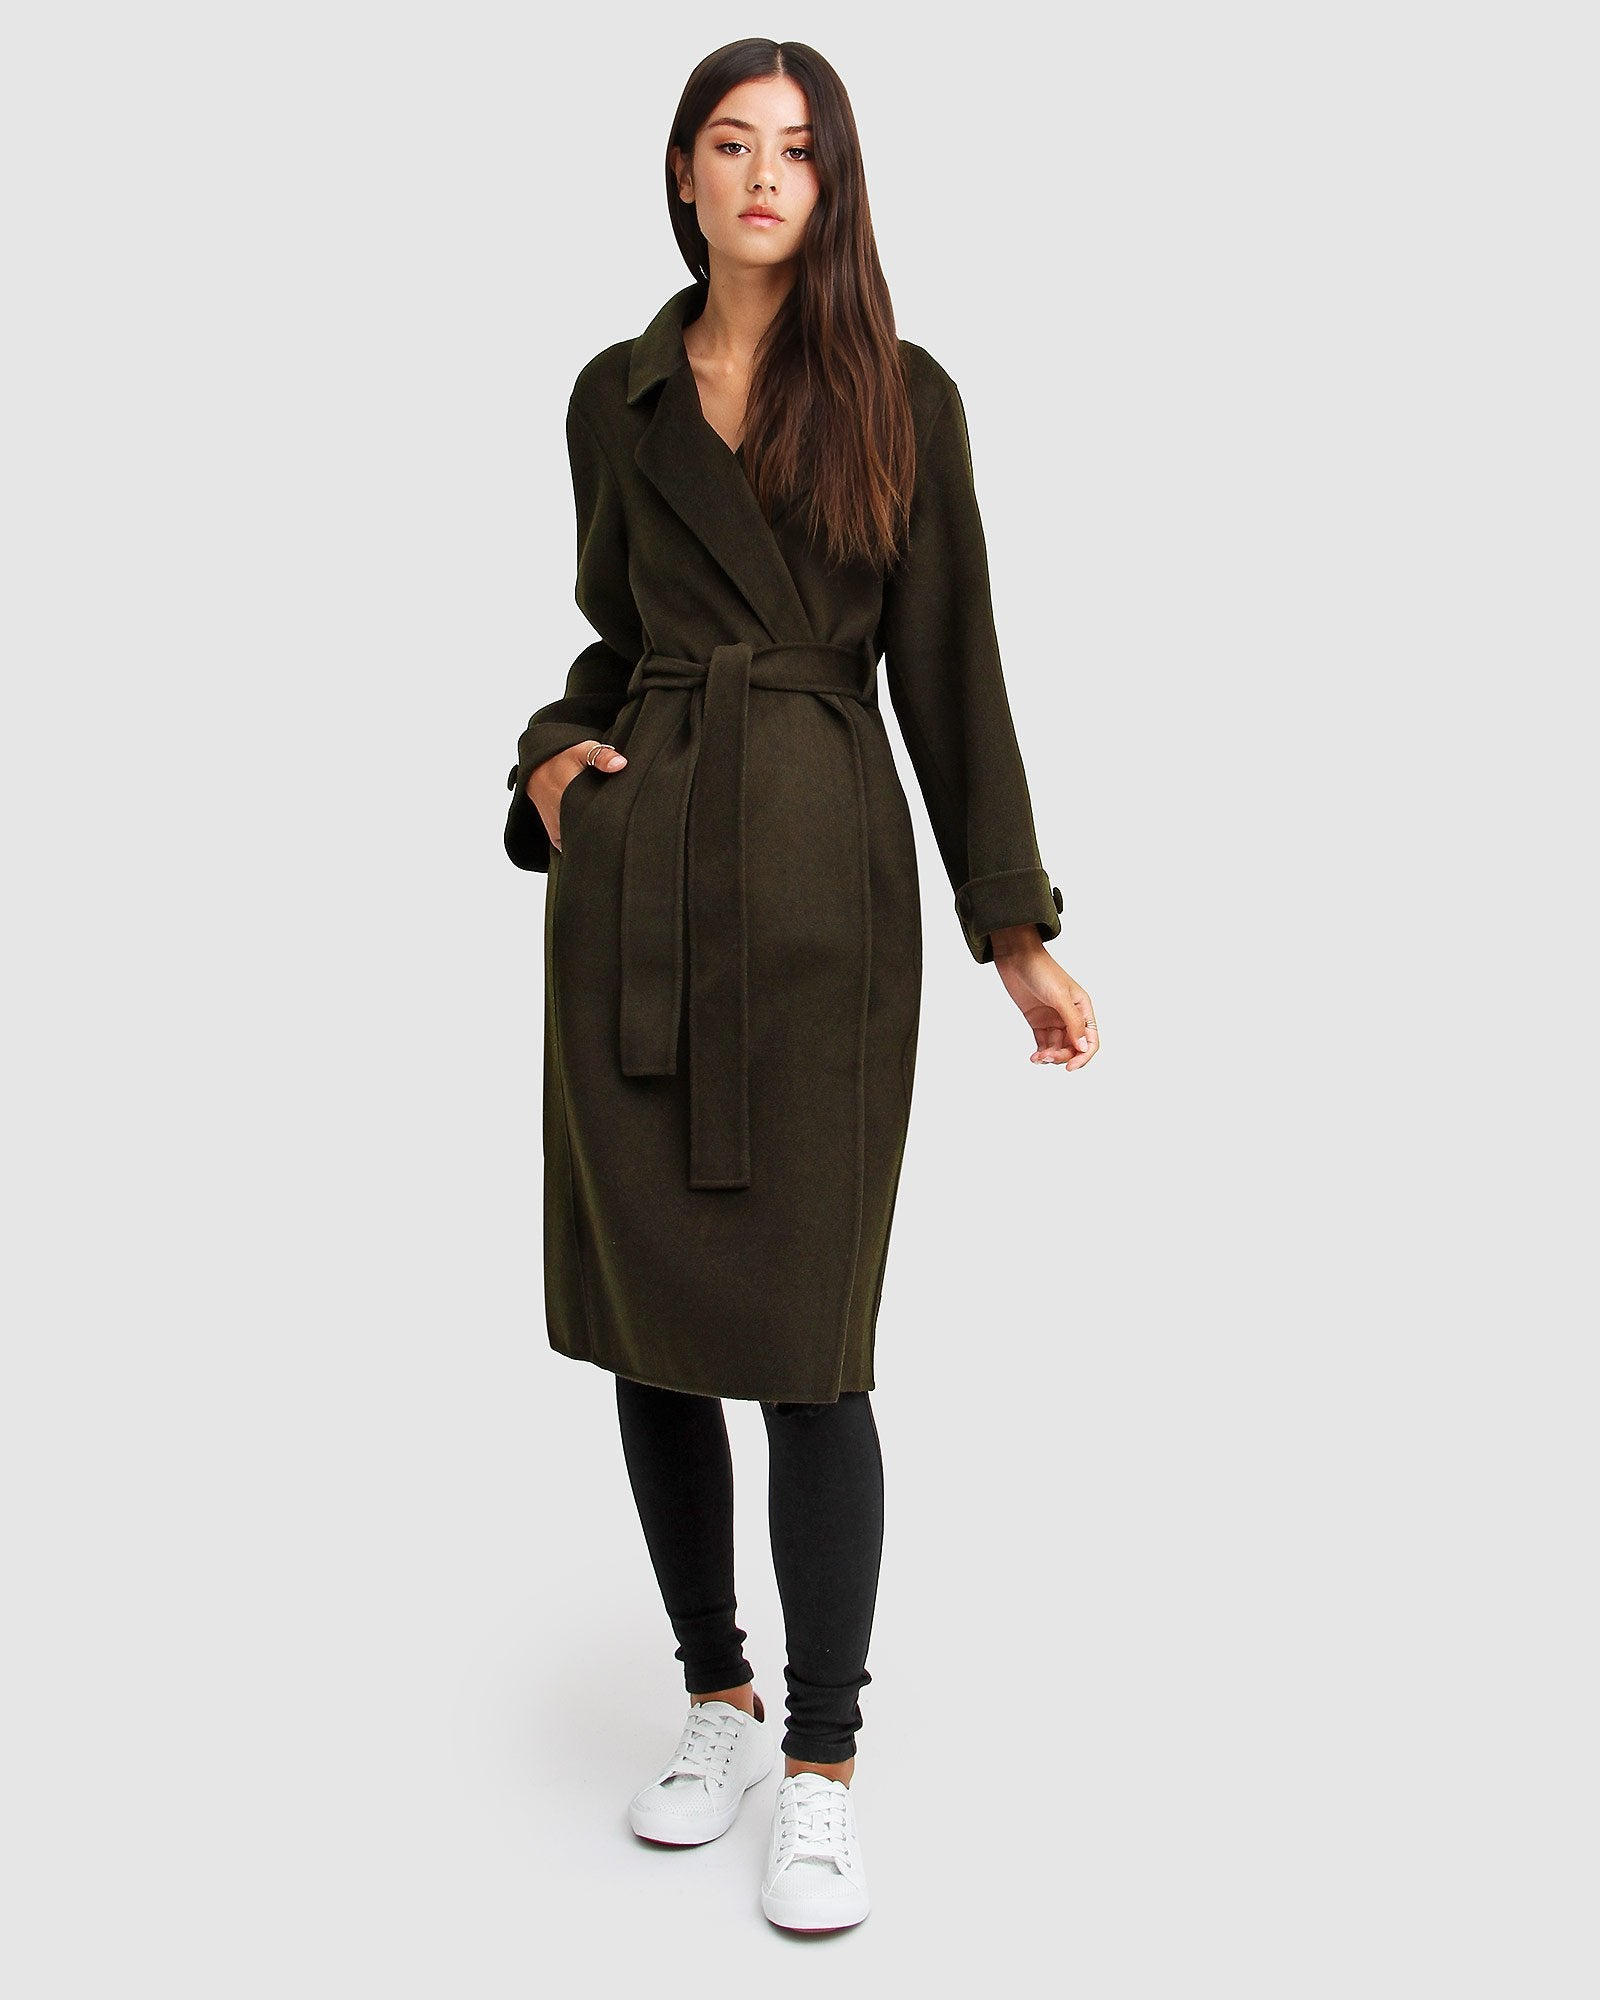 Stay Wild Oversized Wool Coat - Military